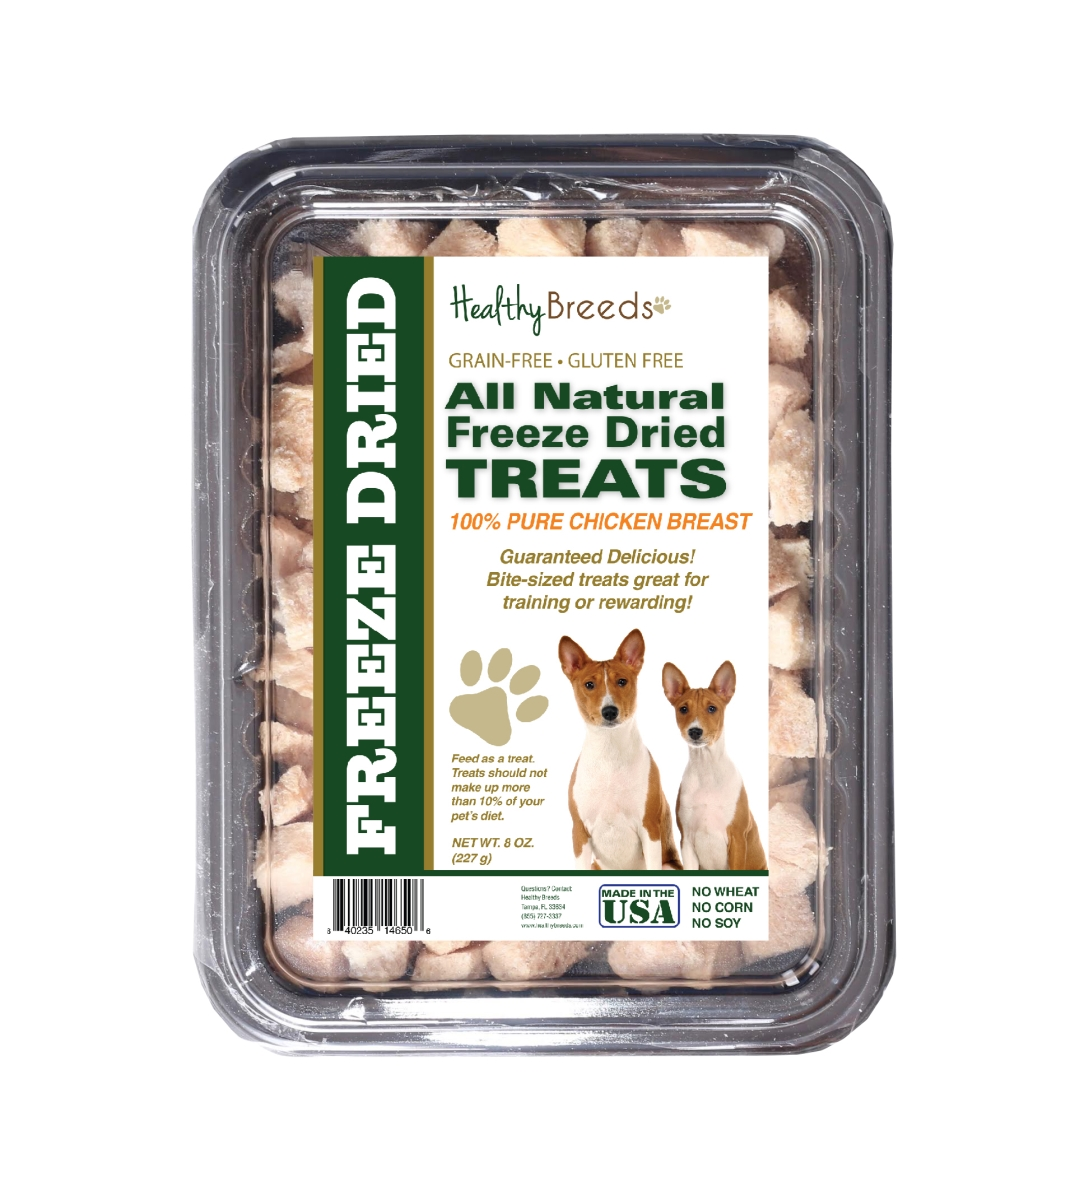 Healthy Breeds 840235146506 8 oz Basenji All Natural Freeze Dried Treats Chicken Breast